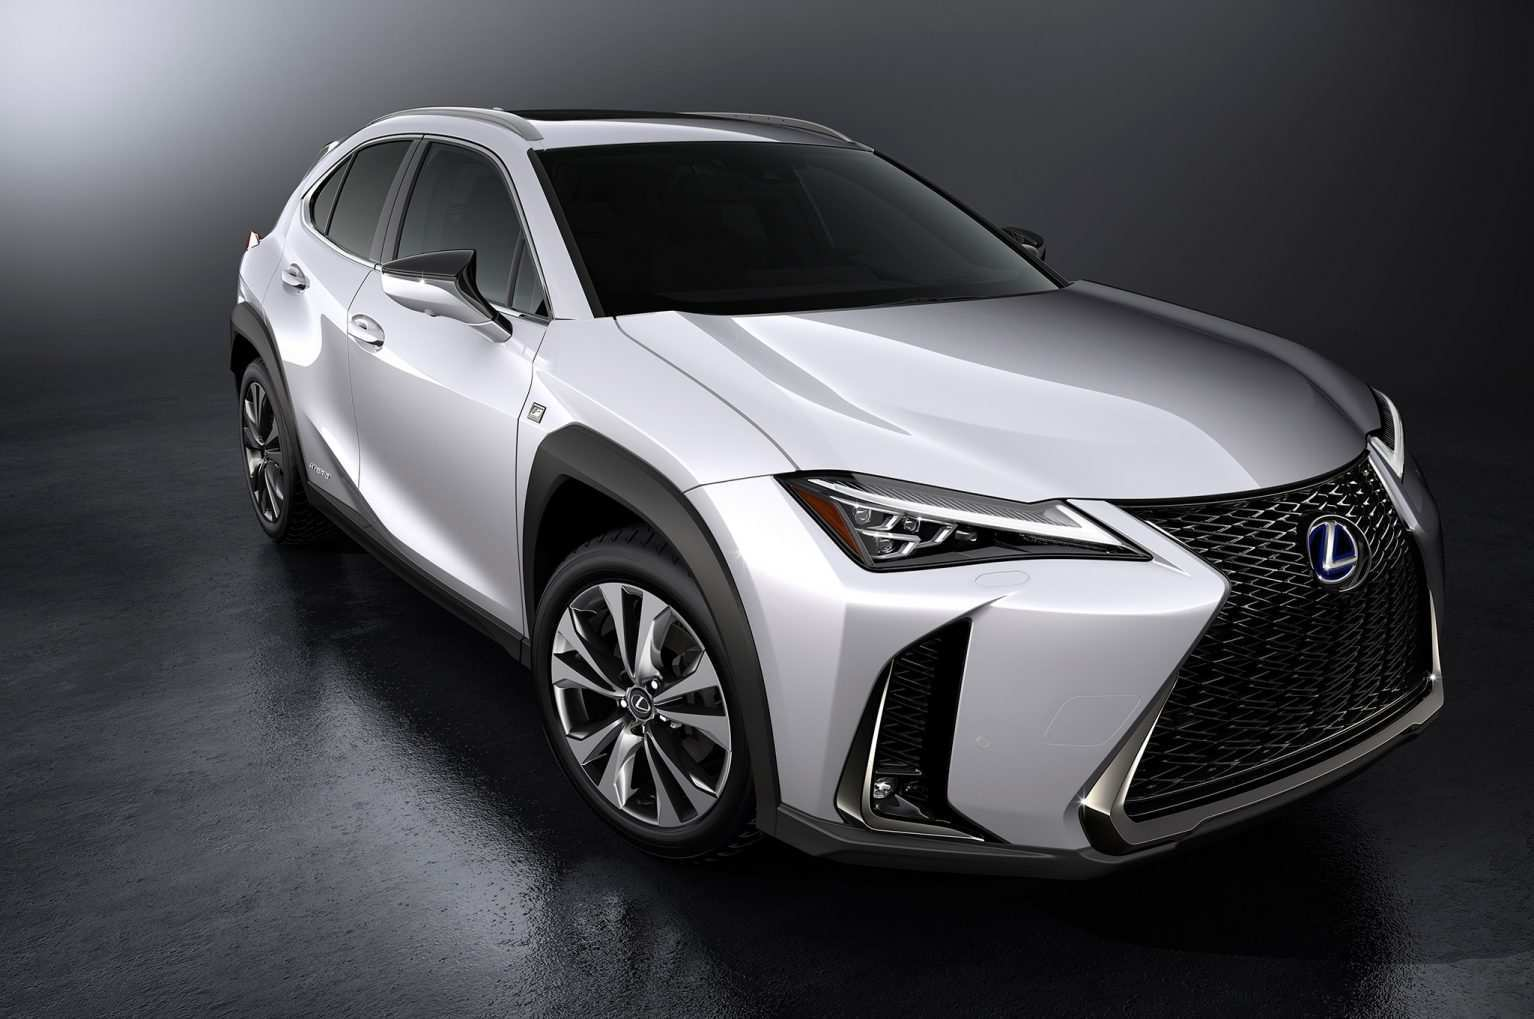 52 Great 2019 Lexus Ux Release Date Exterior and Interior with 2019 Lexus Ux Release Date